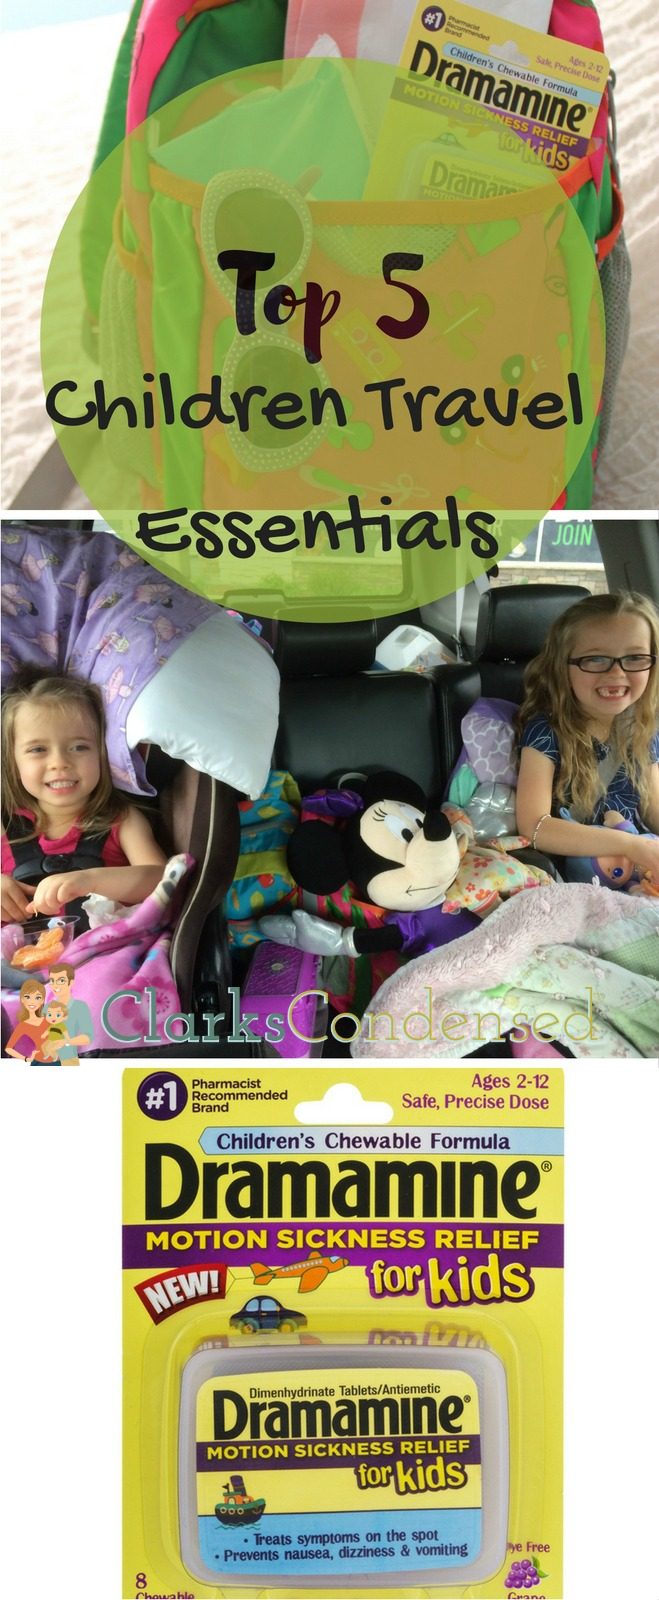 Do you travel with children? Check out our list of travel must-haves! #AdventuresInMotion #IC #ad via @clarkscondensed